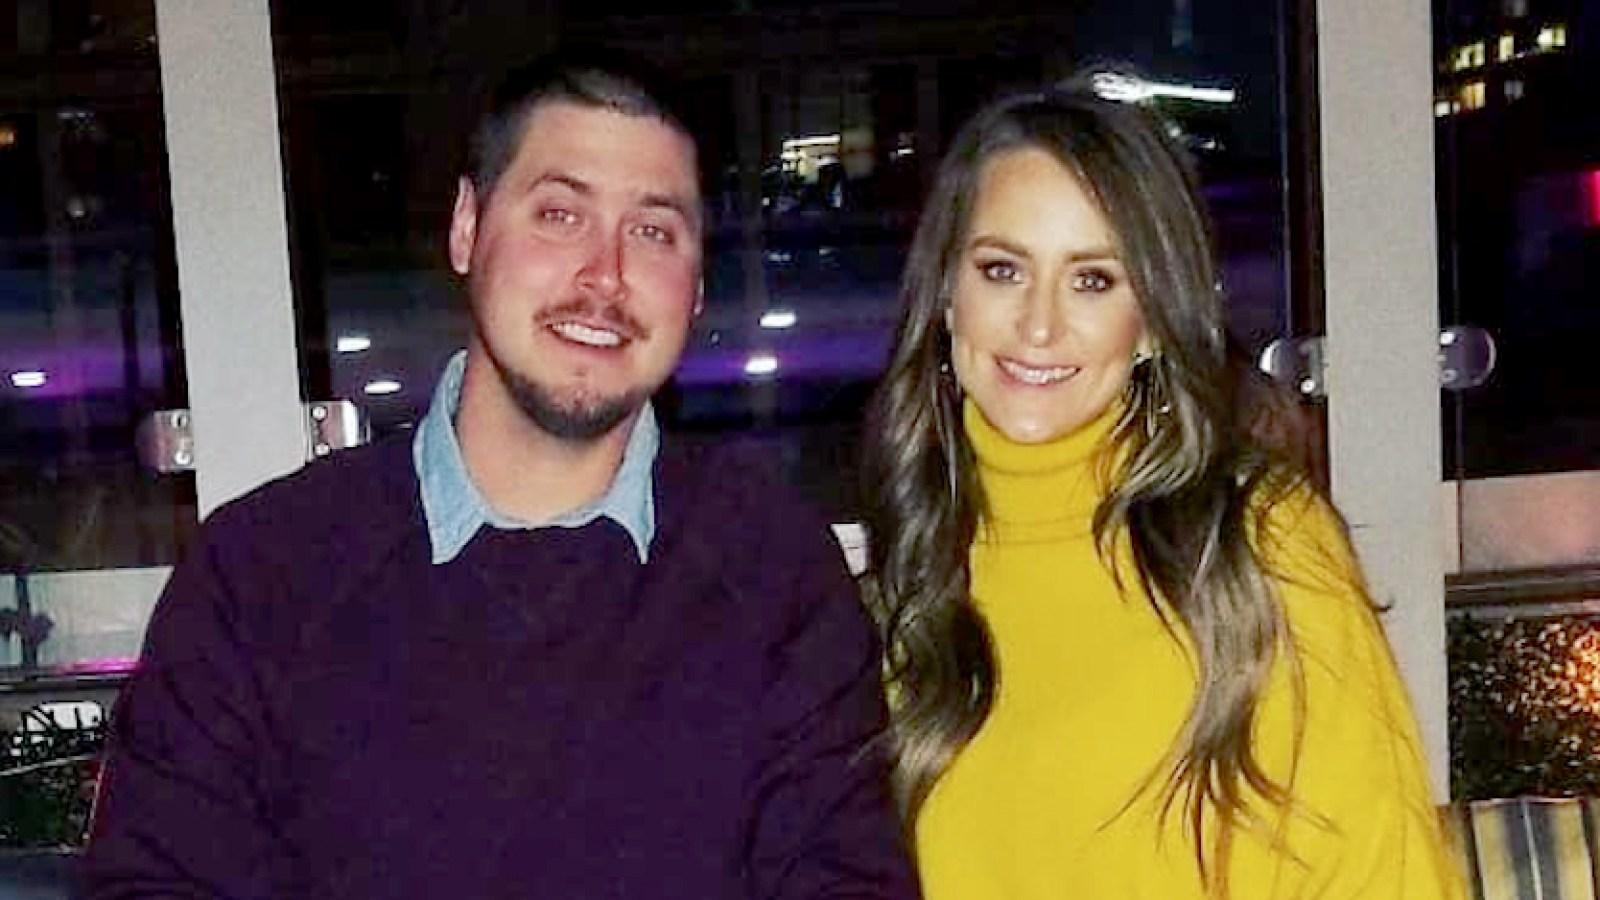 Leah Messer Says She Wishes She Never Lied To Ex-Husband Jeremy Calvert About The Abortion